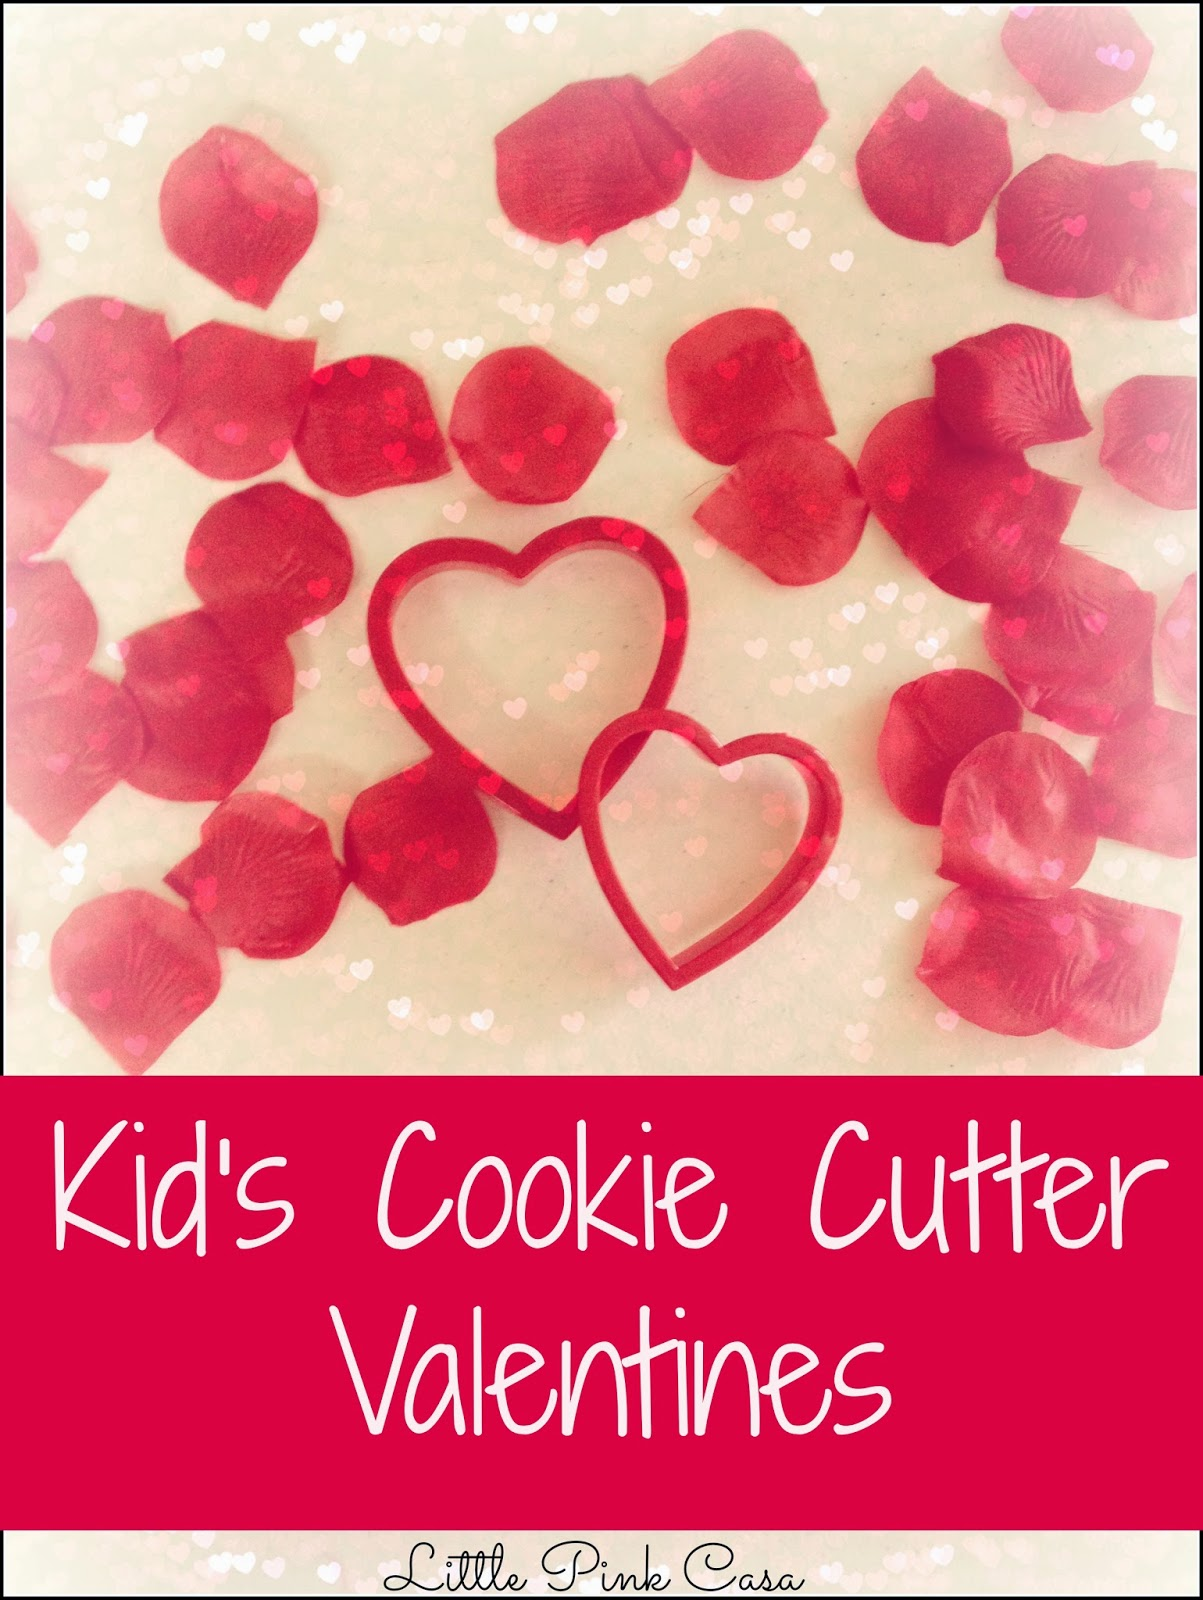 How to Make Easy Valentine Cards for Kids with Bible Verses